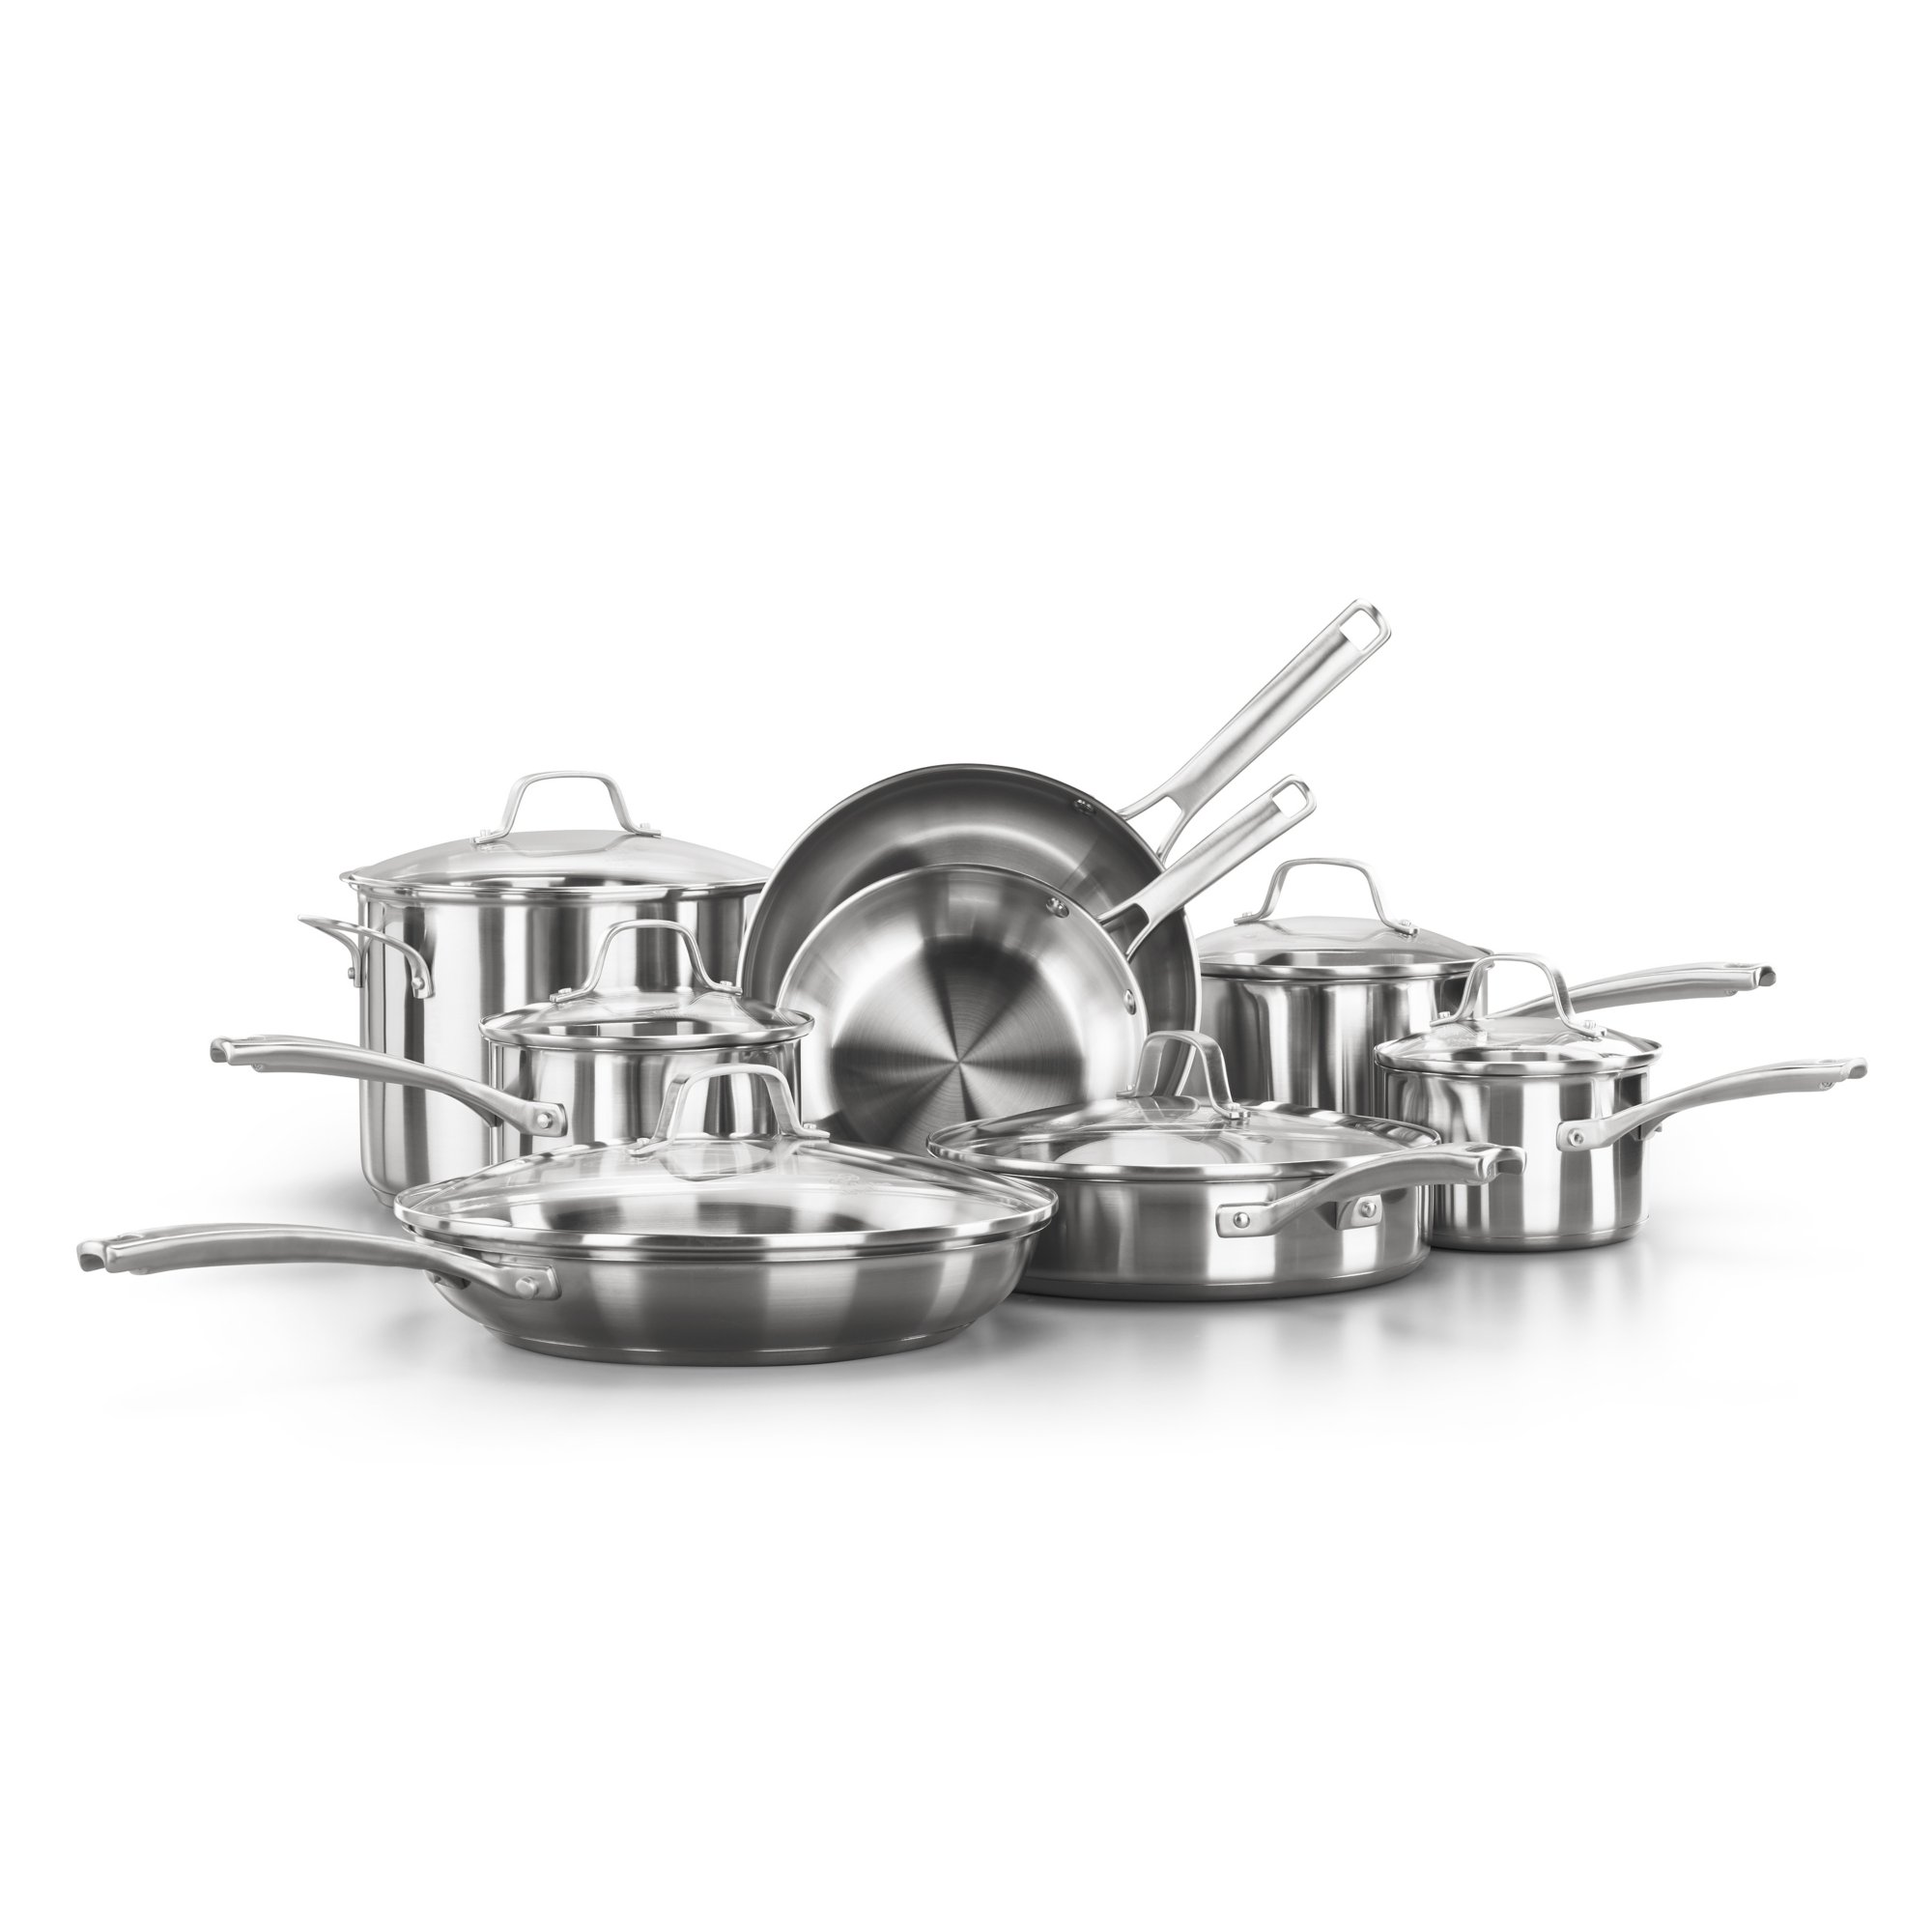 Calphalon Classic™ Stainless Steel 14-Piece Cookware Set